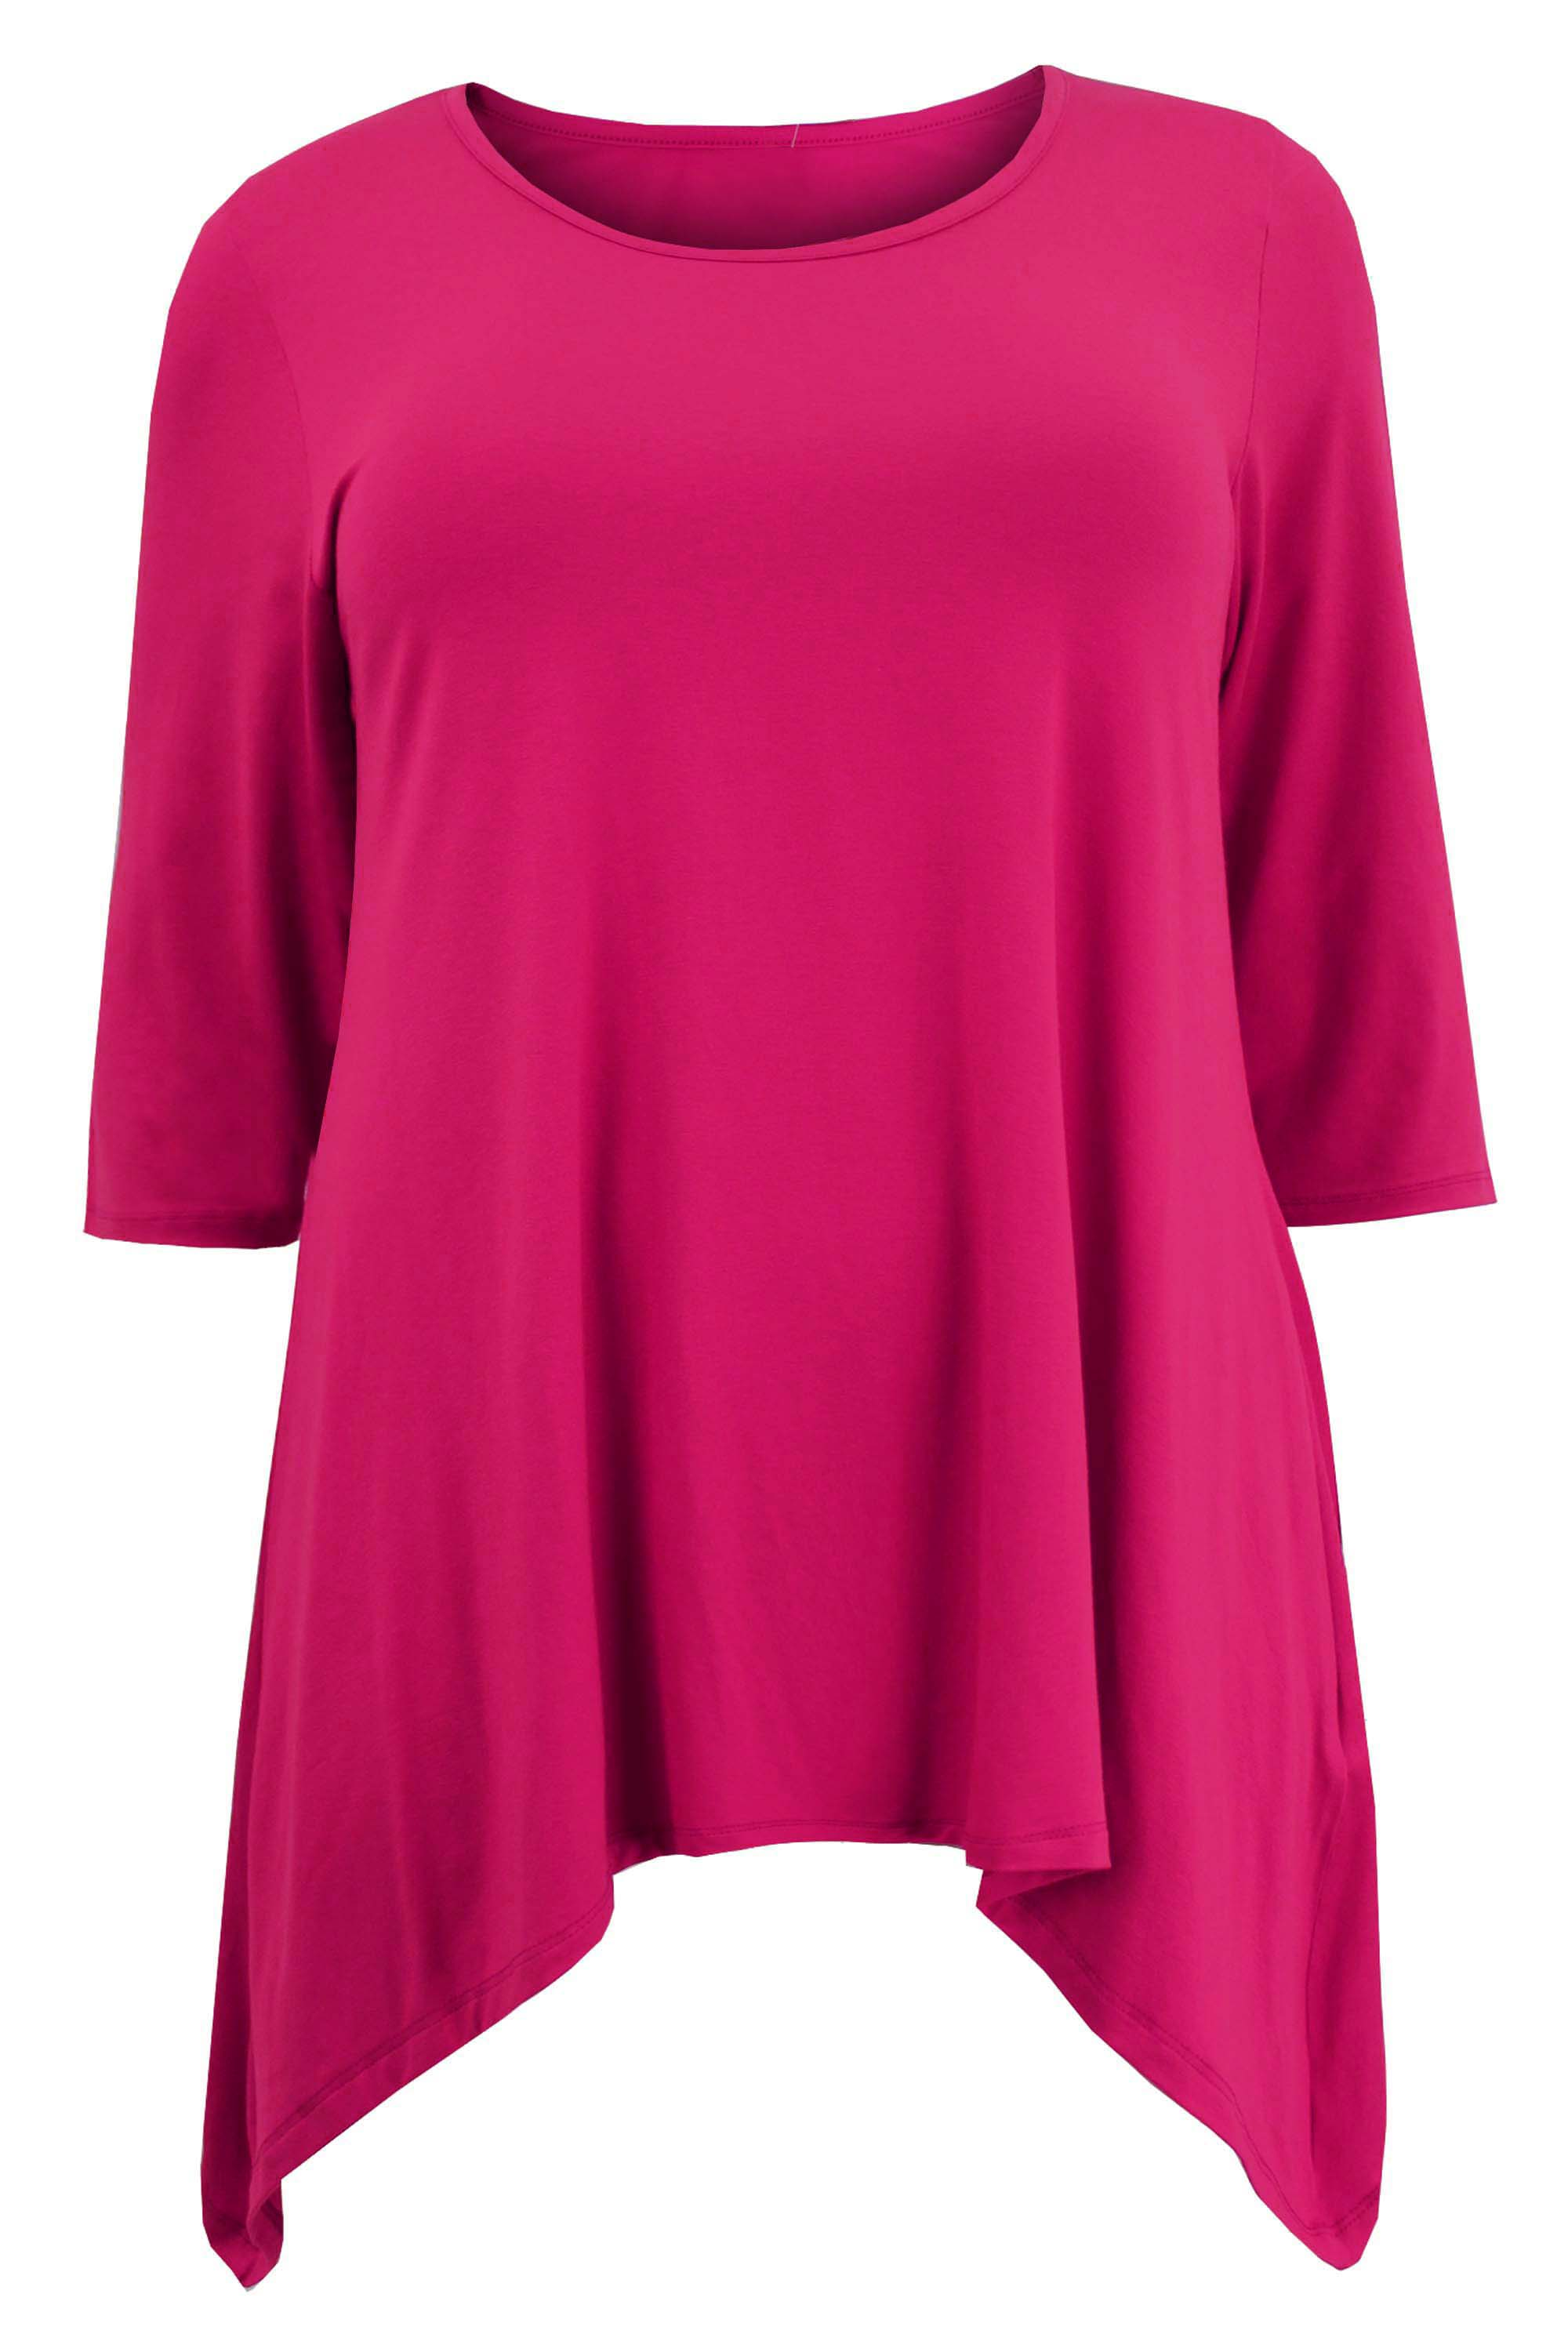 Ladies-Womens-Plus-Size-Three-Quarter-Sleeve-Asymmetric-Tunic